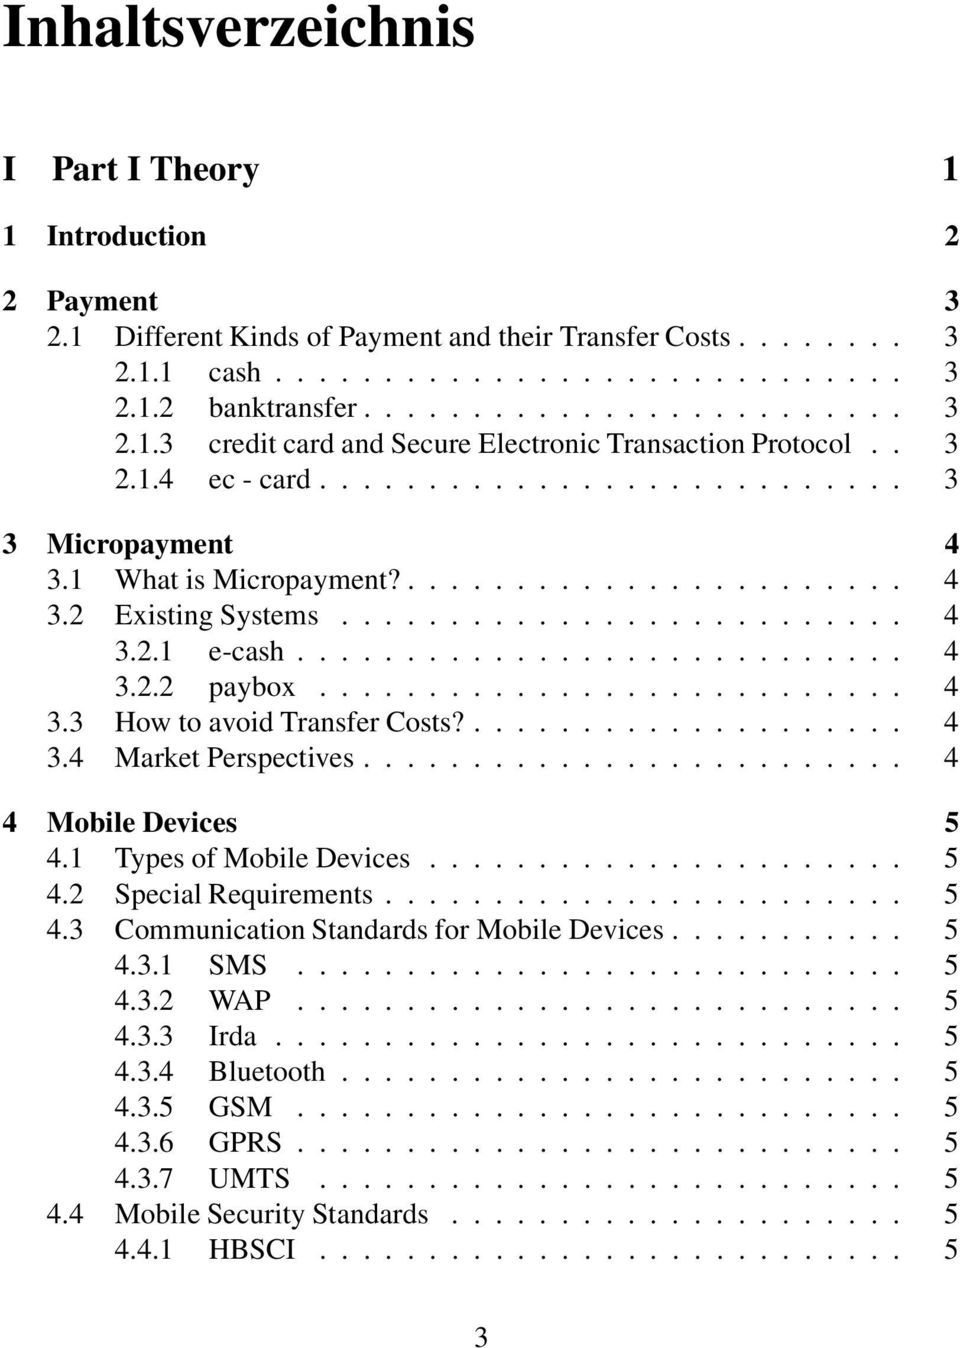 .......................... 4 3.3 How to avoid Transfer Costs?.................... 4 3.4 Market Perspectives......................... 4 4 Mobile Devices 5 4.1 Types of Mobile Devices...................... 5 4.2 Special Requirements.